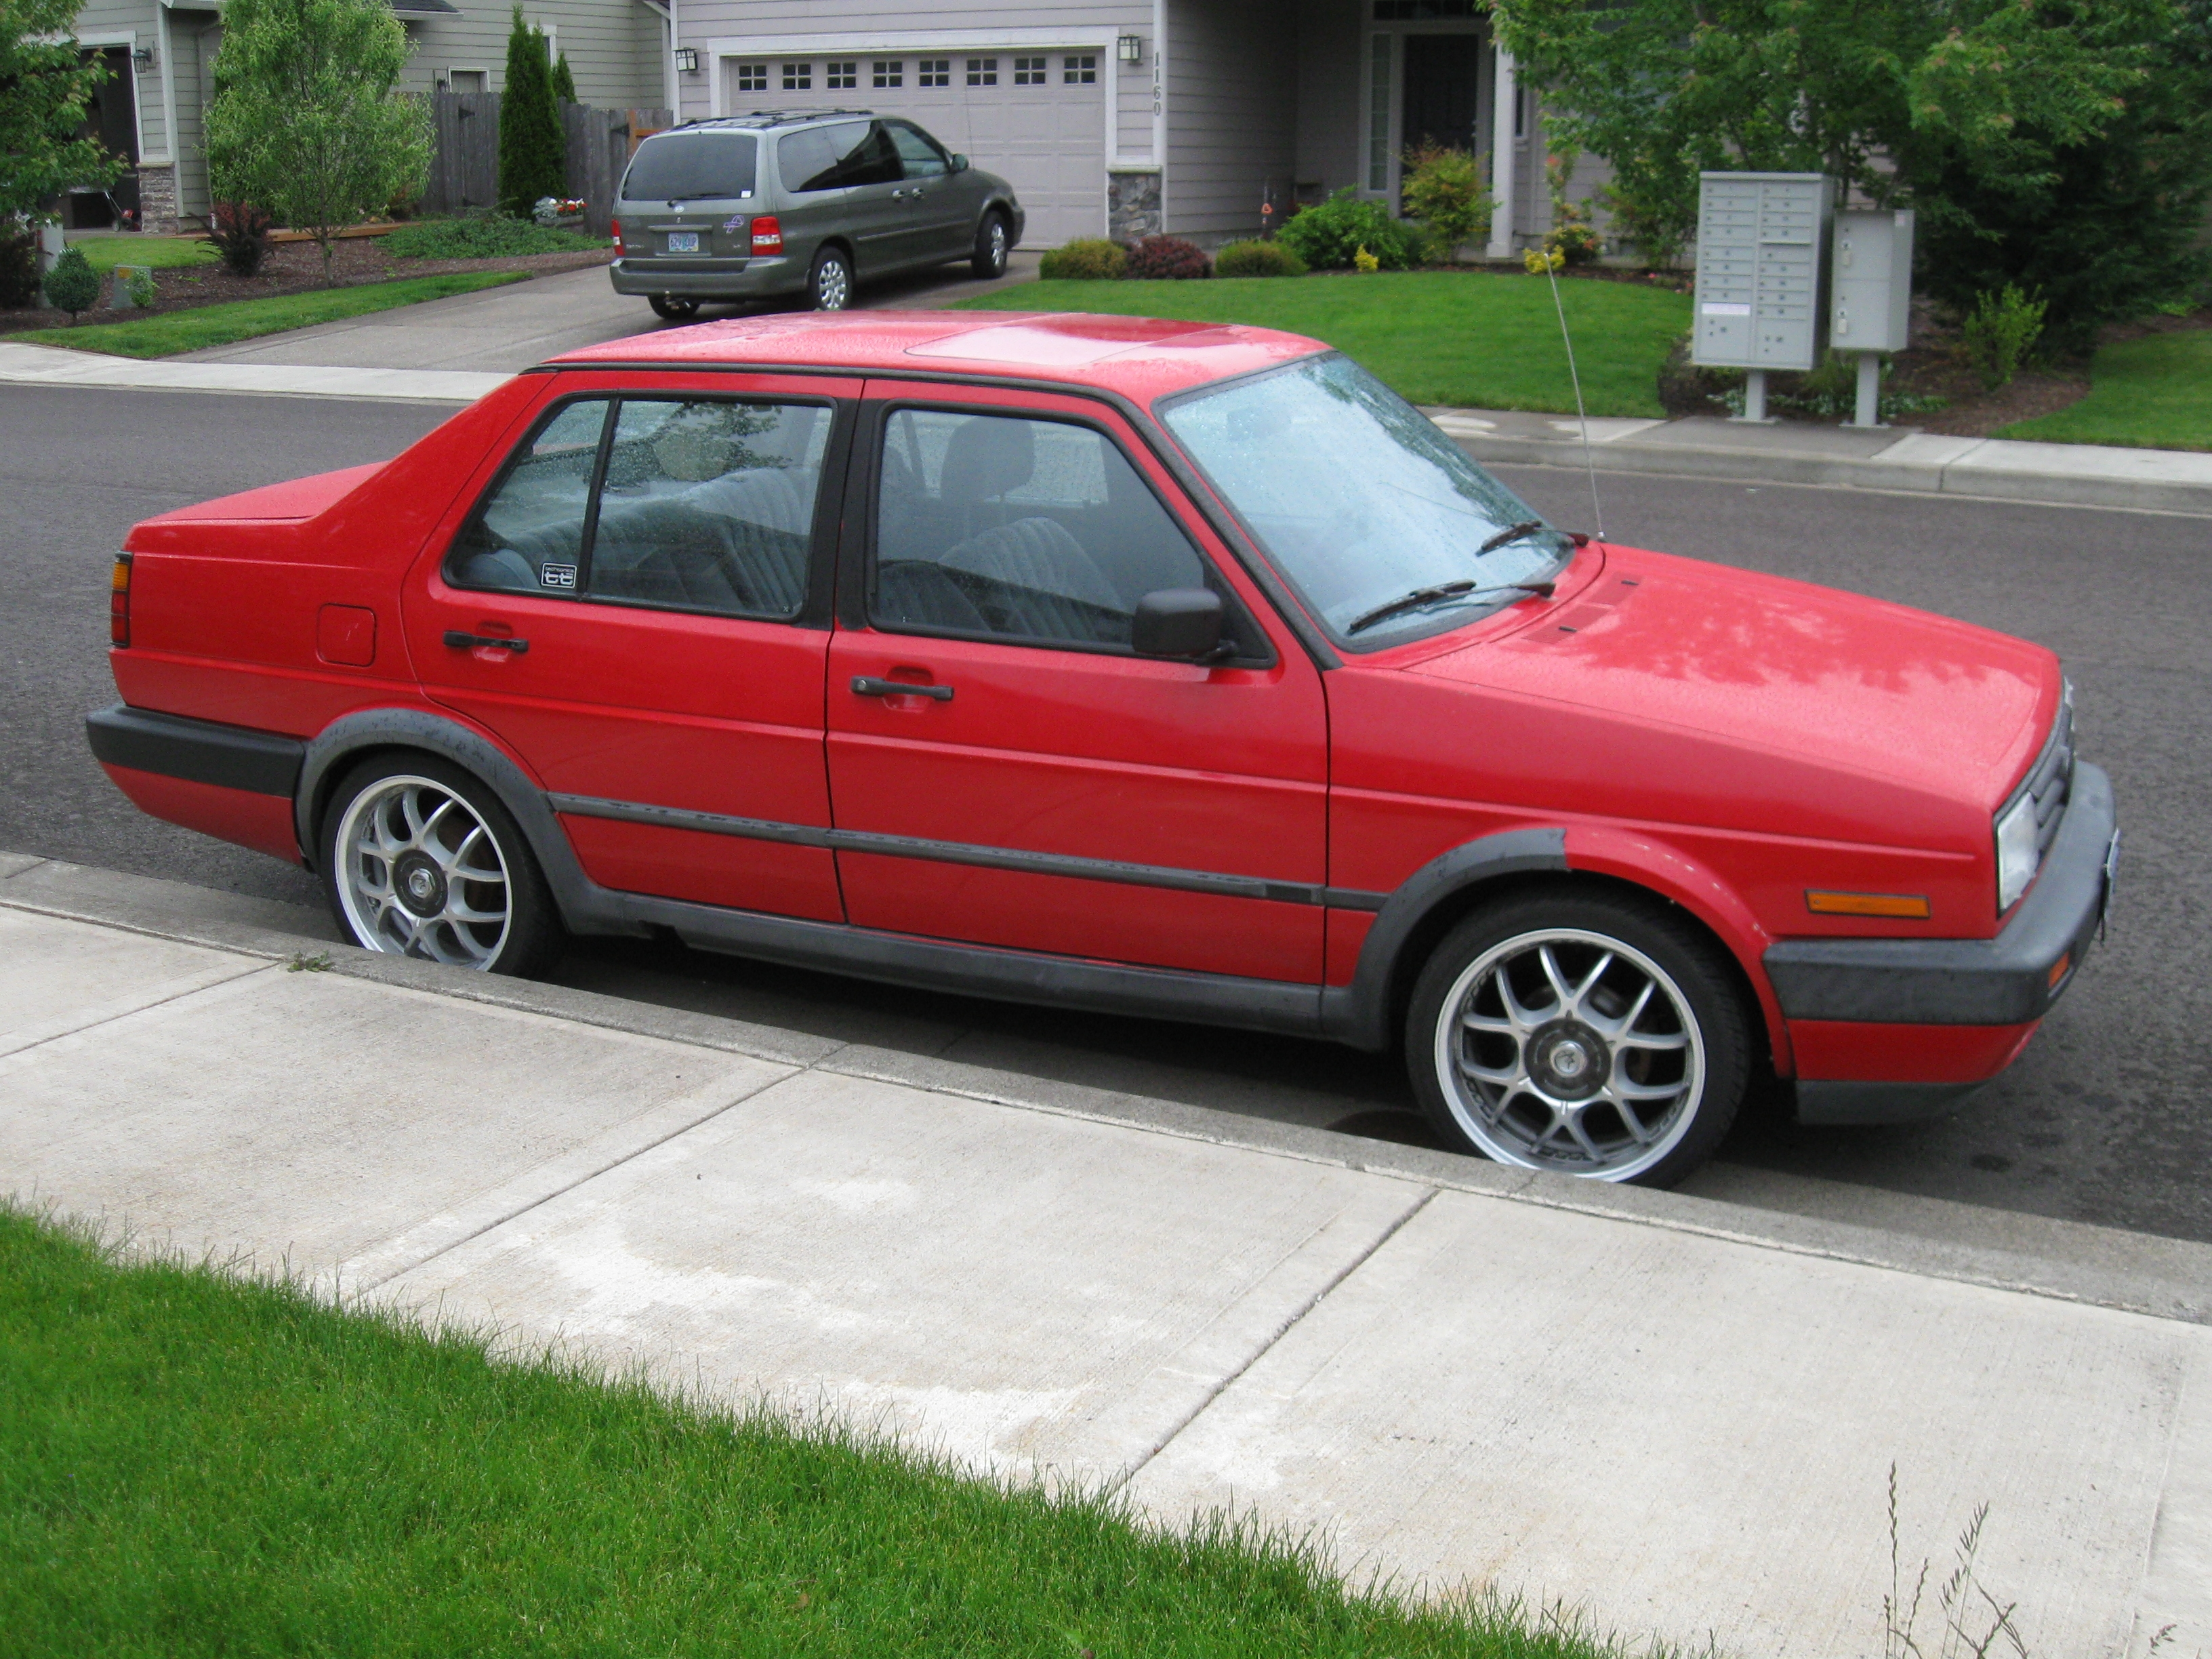 Dugzy33 1993 Volkswagen Jetta Specs, Photos, Modification Info at CarDomain